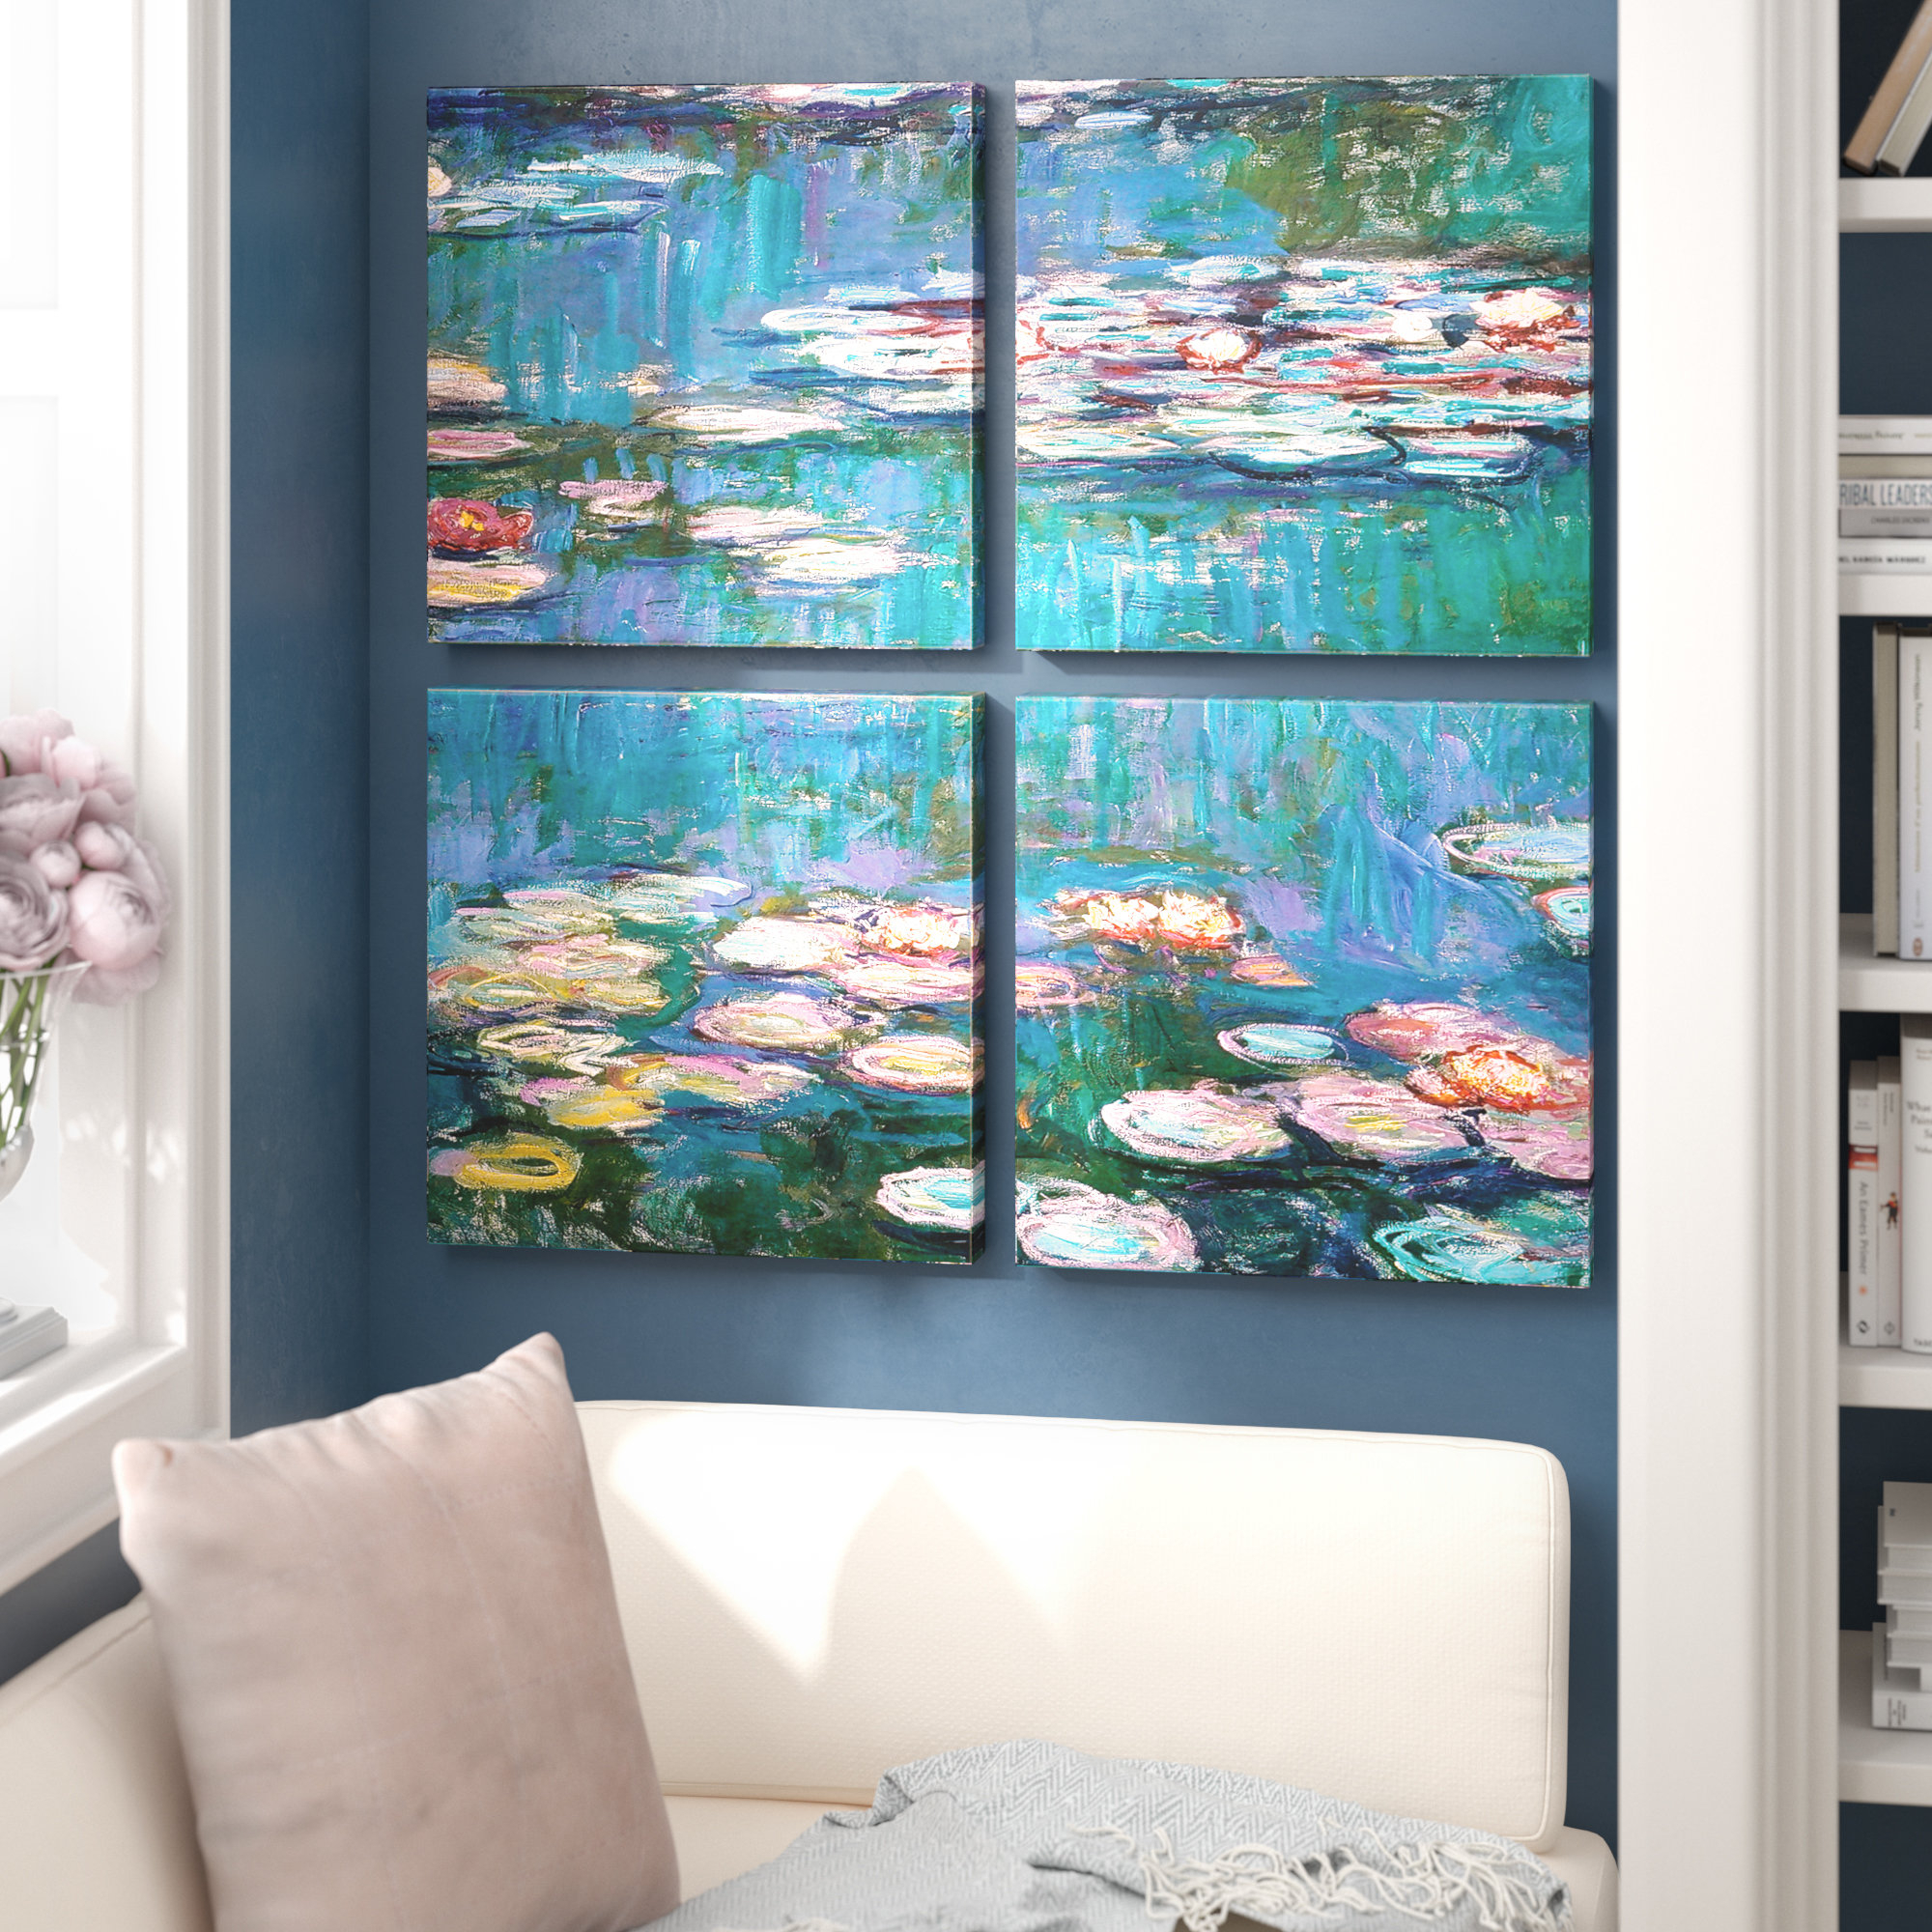 4 Piece Wall Decor Sets By Charlton Home Throughout Latest Charlton Home 'water Lilies'claude Monet 4 Piece Painting Print (View 3 of 20)